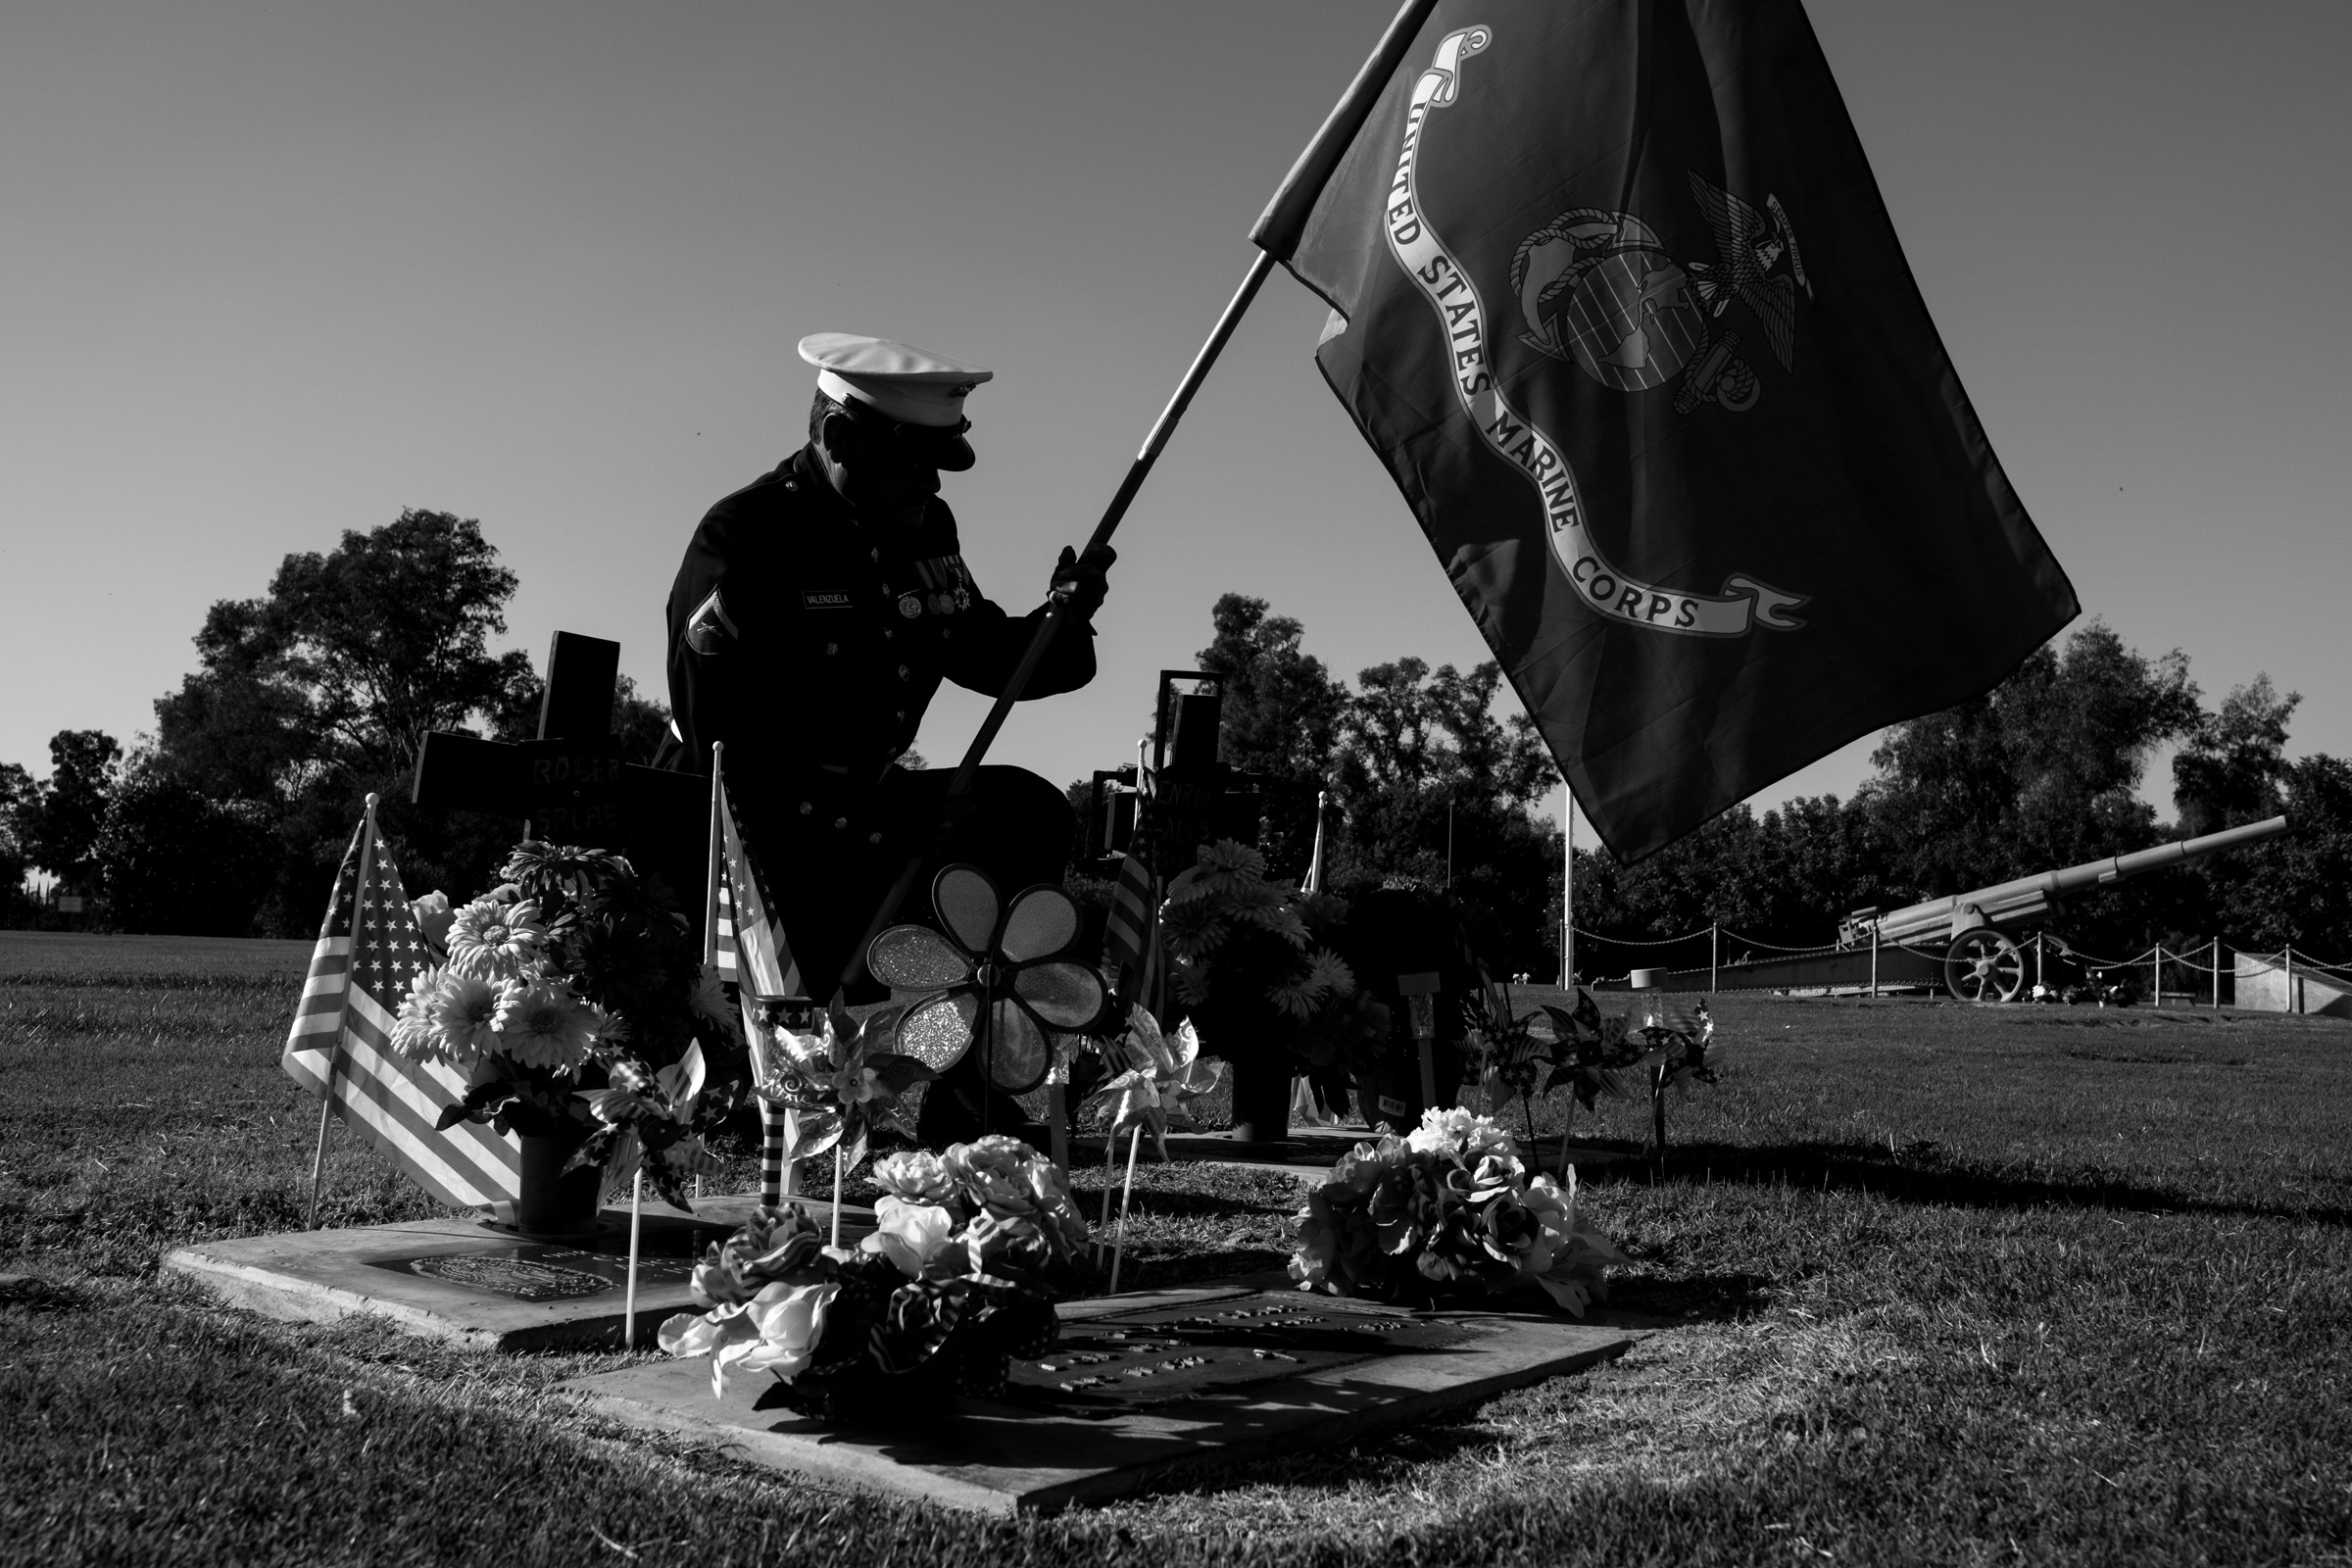 U.S. Marine Corps and Vietnam War veteran Manuel Valenzuela visits the burial site of deported U.S. Marine Corps veteran Enrique Salas, right, in Reedley, California, Monday, October 8, 2018. Valenzuela and his older brother Valente, a U.S. Army and Vietnam War veteran, have been fighting deportation since 2009.   Salas, who was deported and living in Tijuana, died en route to a hospital in the United States after being seriously injured in a car accident in Tijuana. It took 10 days for an emergency humanitarian parole visa to be granted allowing Salas to receive better care in the United States. Salas, deported in 2006, was able to return to the U.S. only to be buried with military honors next to his younger brother, another fallen Marine. (Photo by Joel Angel Juárez/GroundTruth)